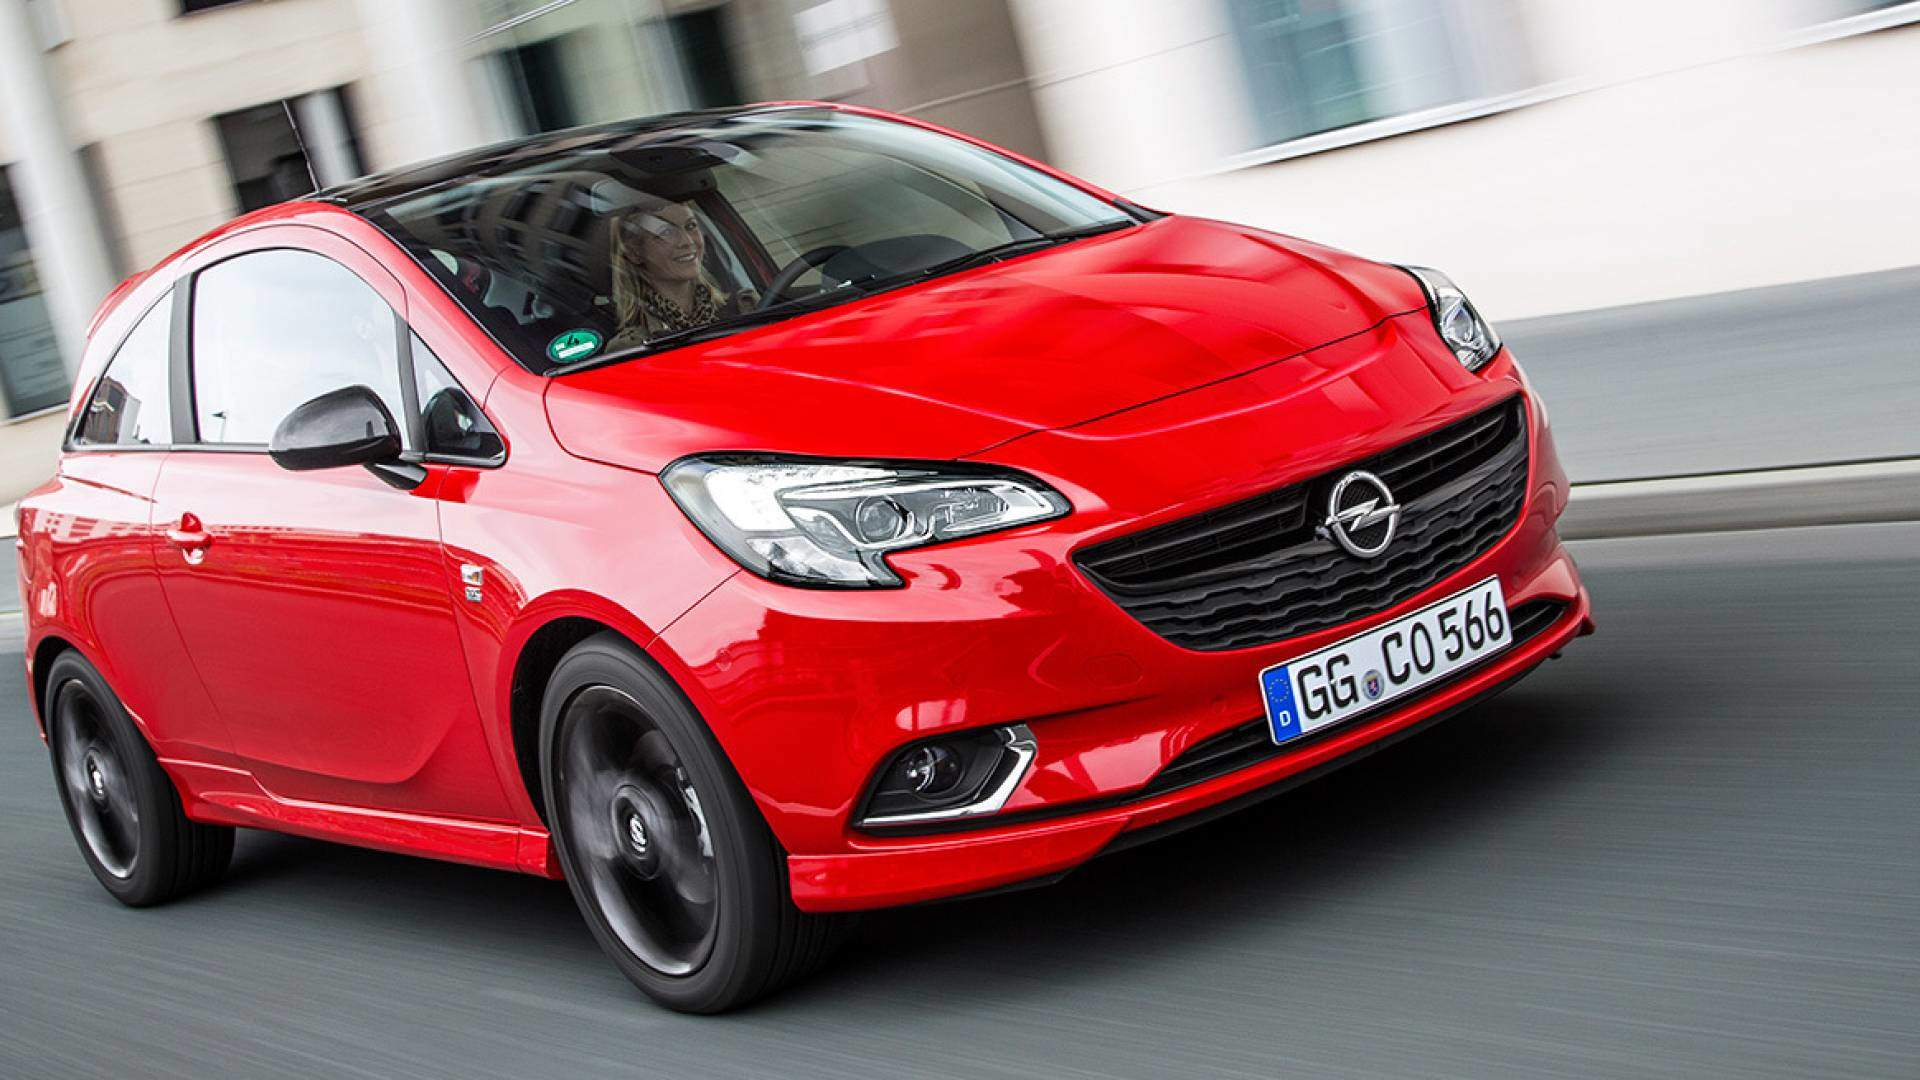 Fast Test Opel Corsa 1.0 90 cv - RED Live